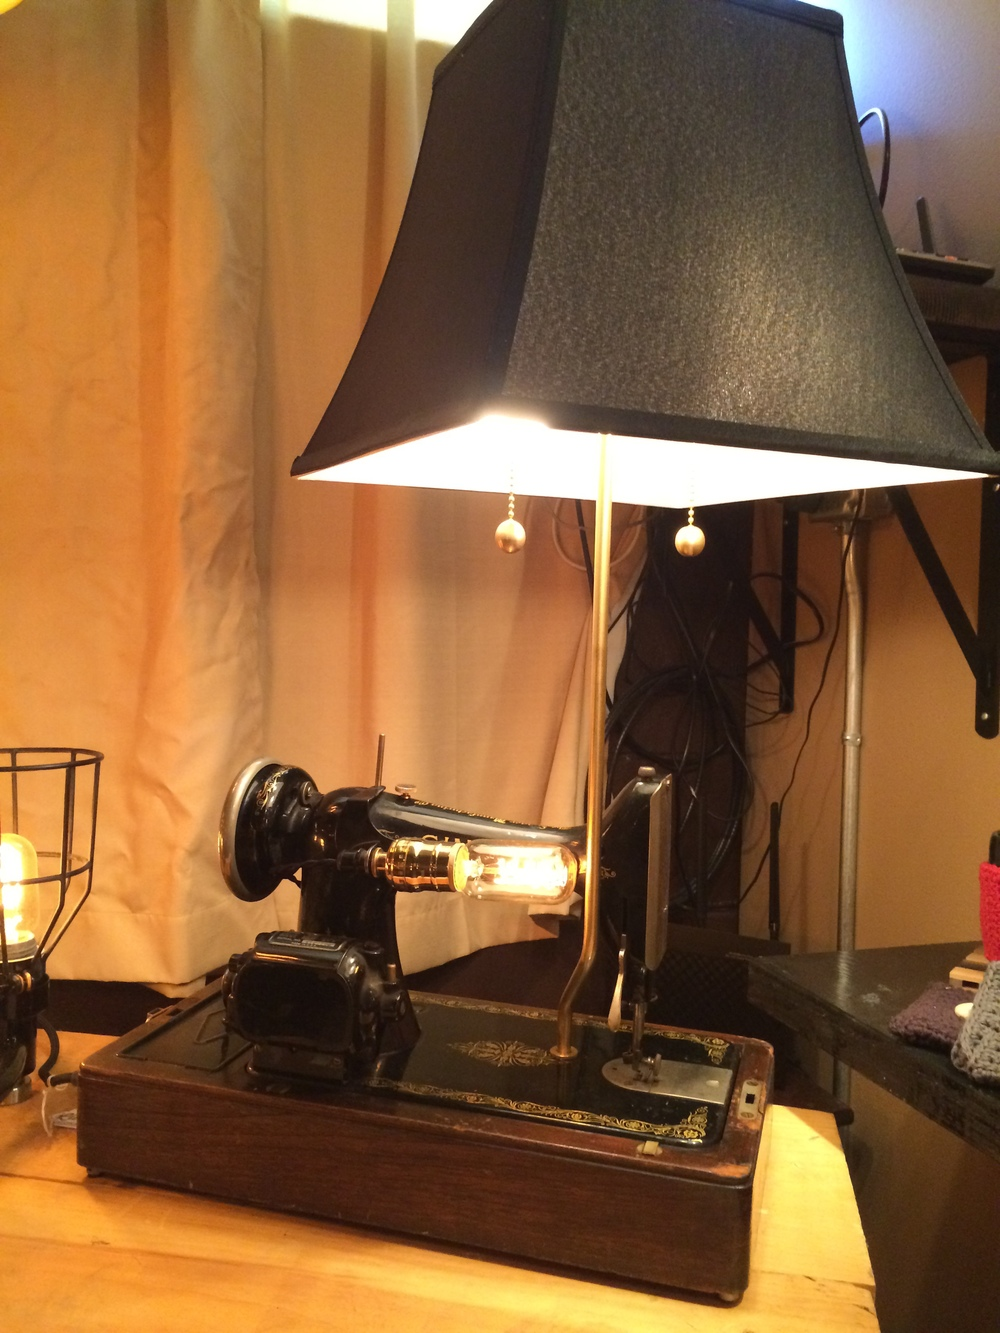 Singer Portable Sewing Machine Lamp w/Touch Dimmer $250